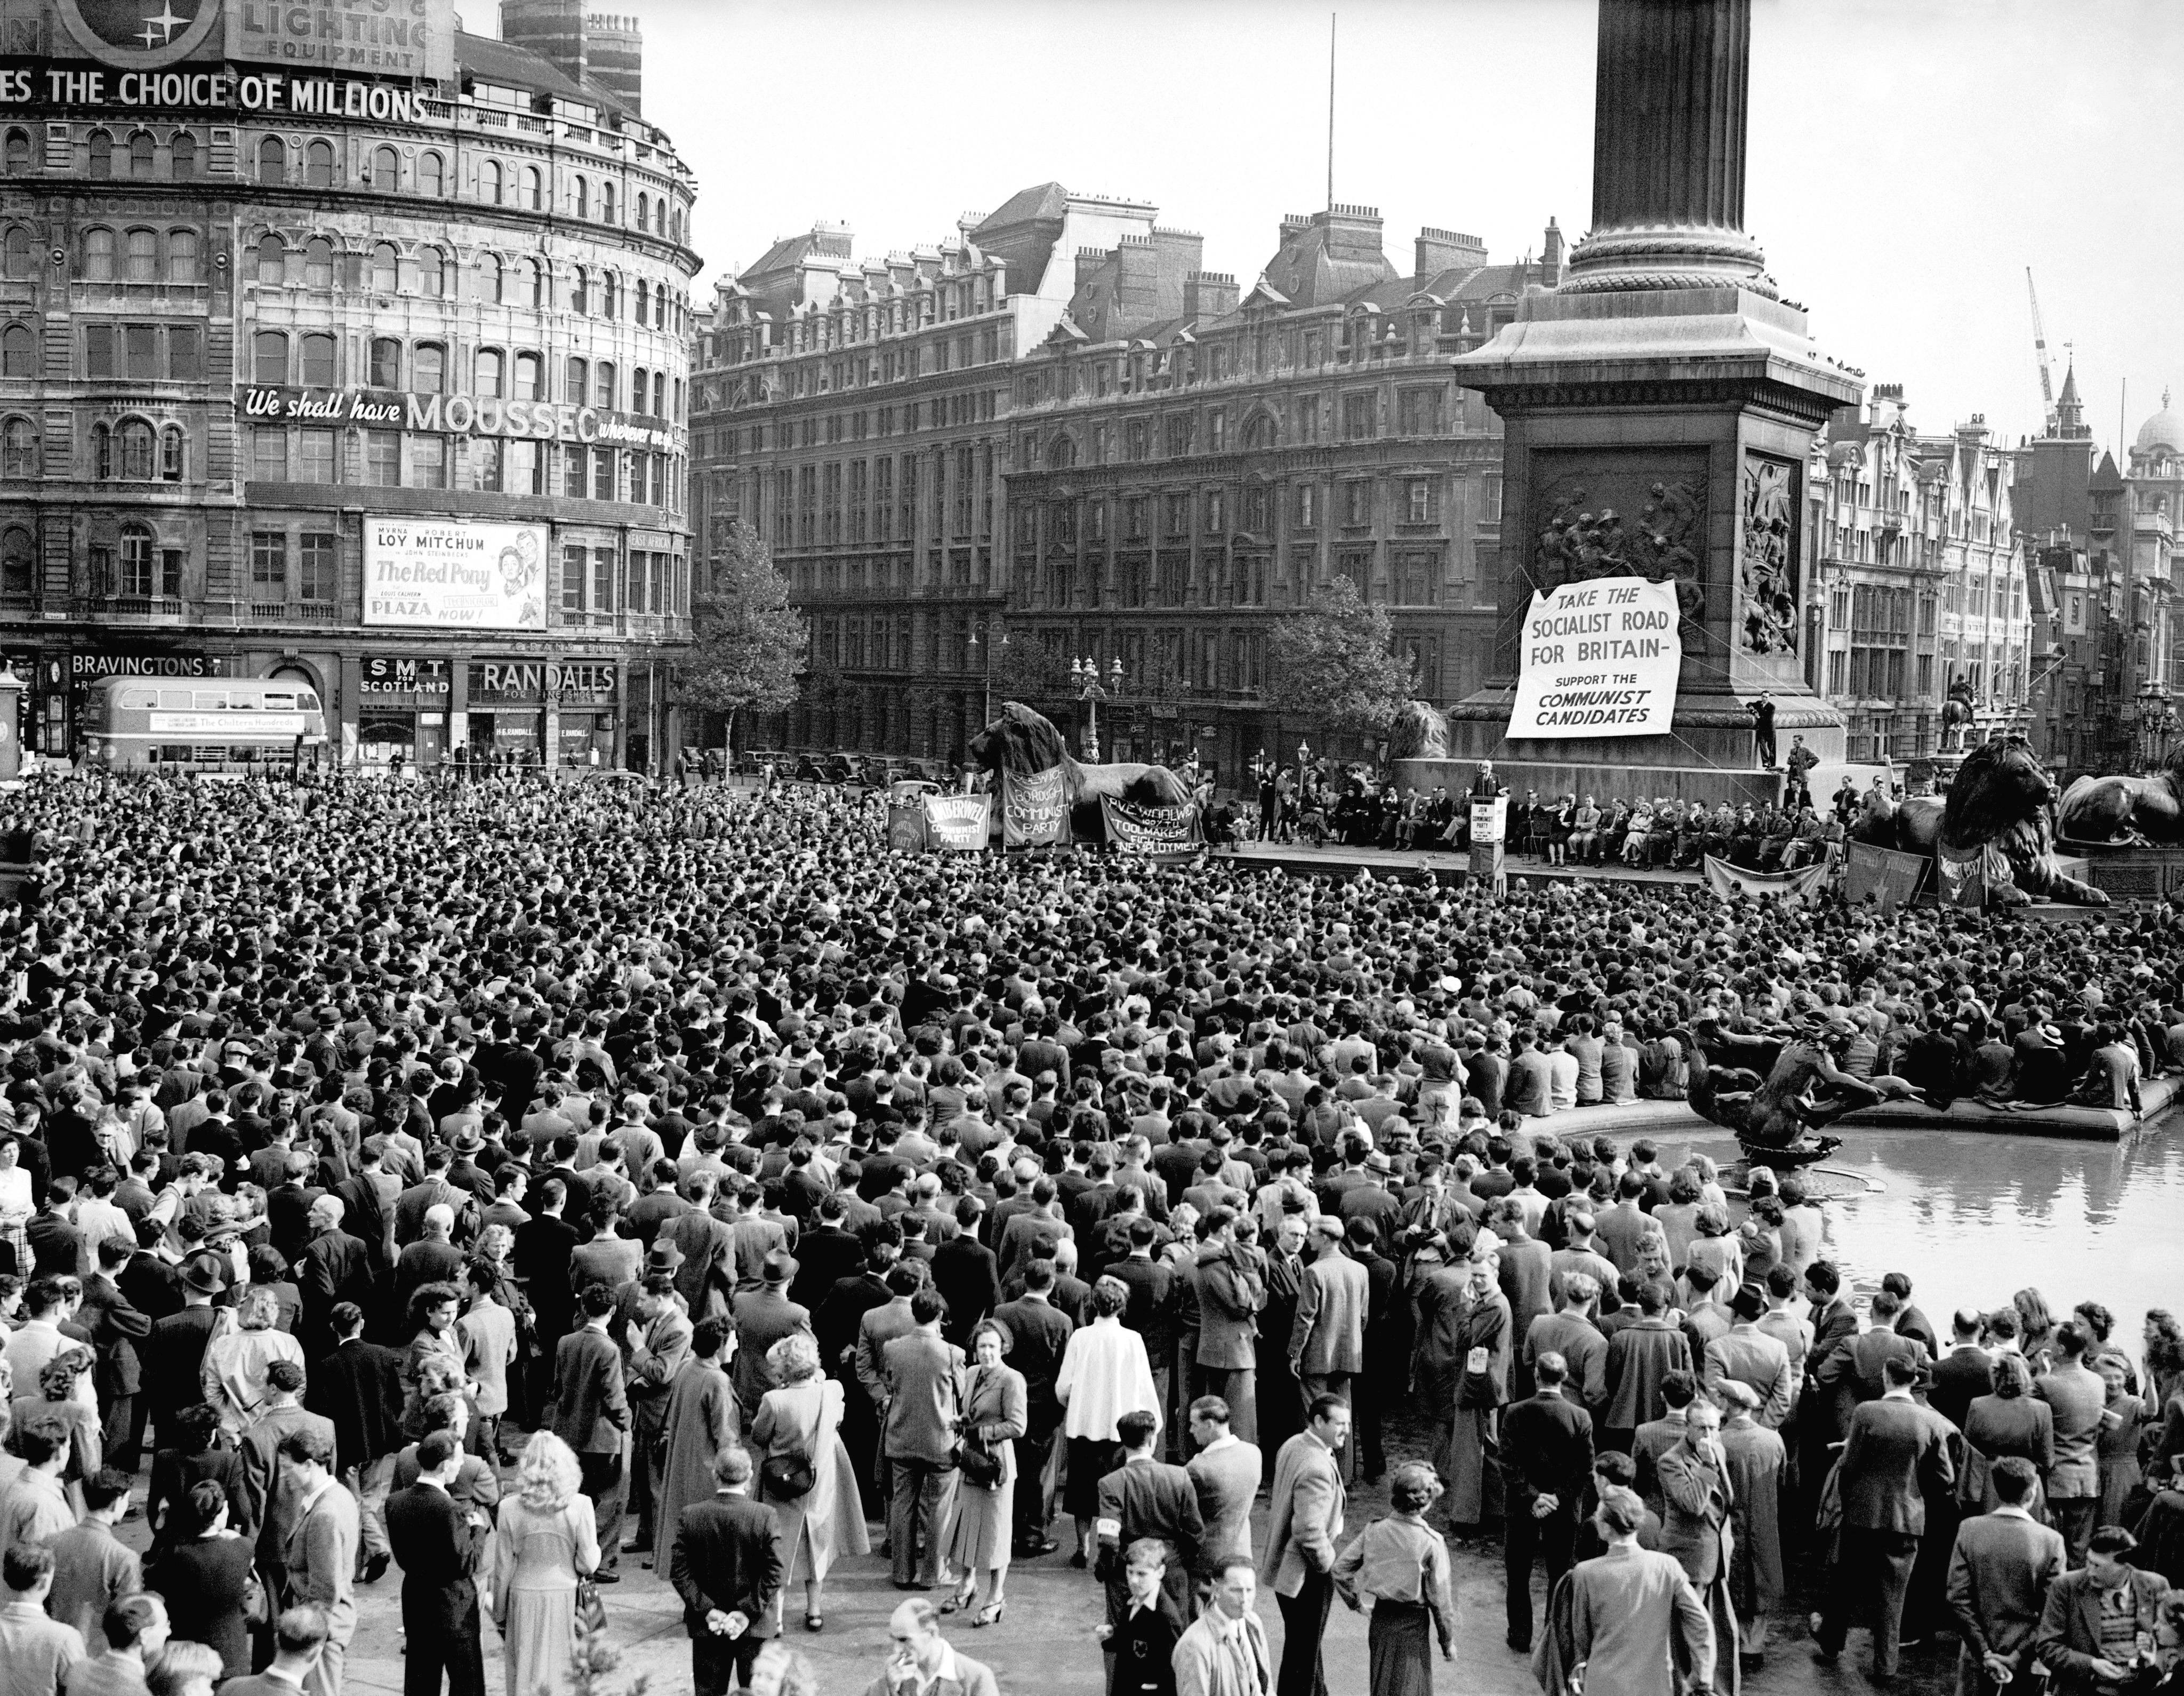 January, 1949: A huge crowd came to see Willie Gallacher, the Communist MP (he remains to this day one of only three Communist MPs elected in the UK without the endorsement of the Labour Party) launching his party's election campaign.